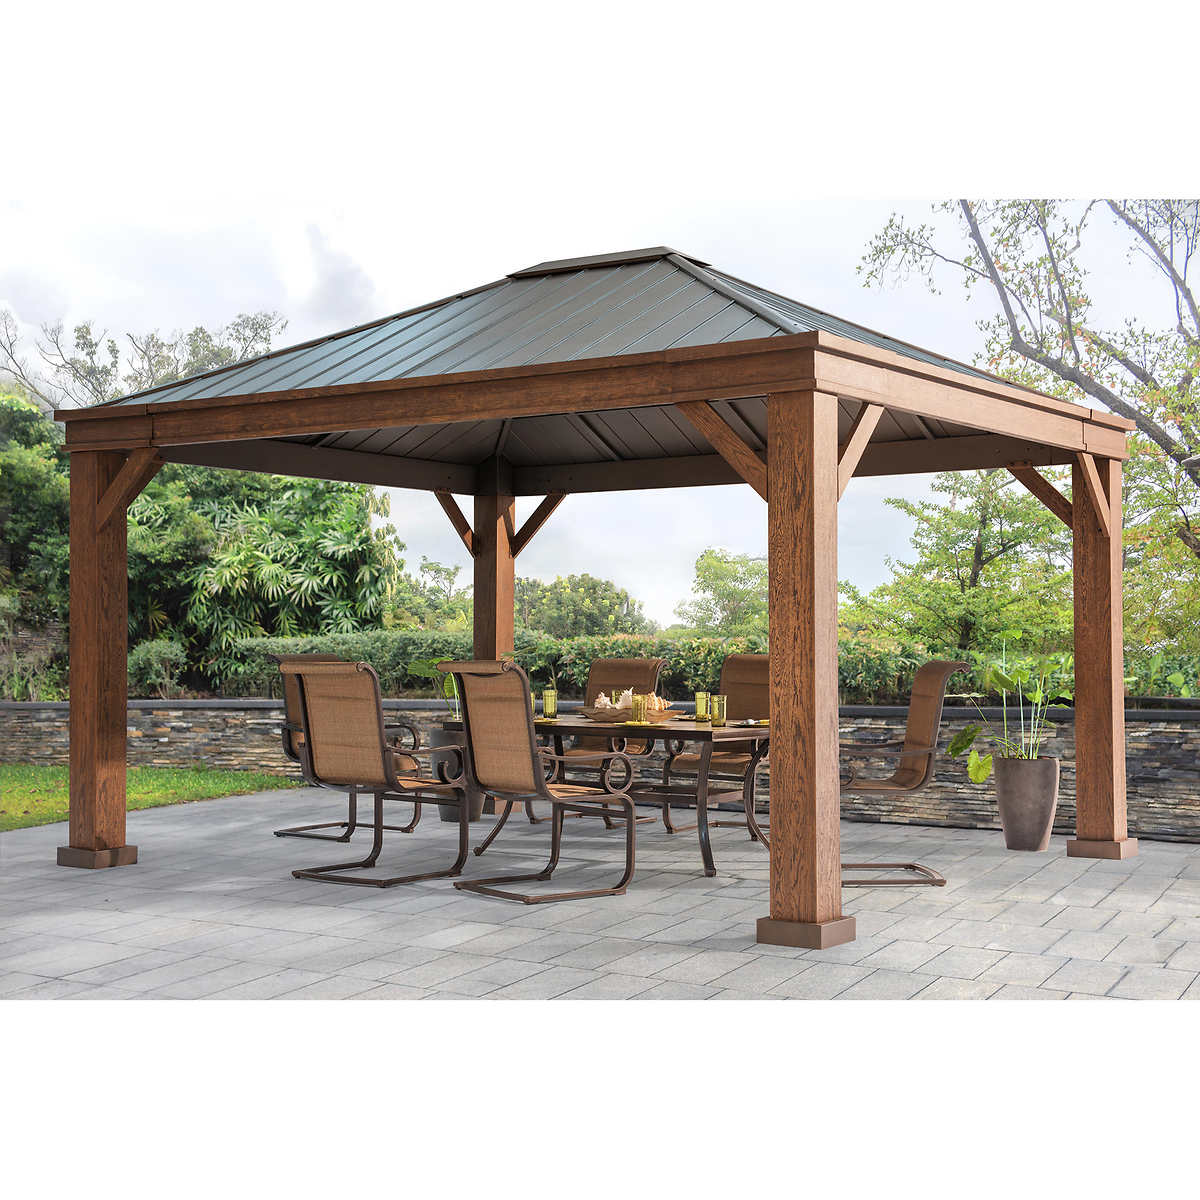 Out of Stock Adland Hardtop 12' x 14' Gazebo - Outdoor Structures